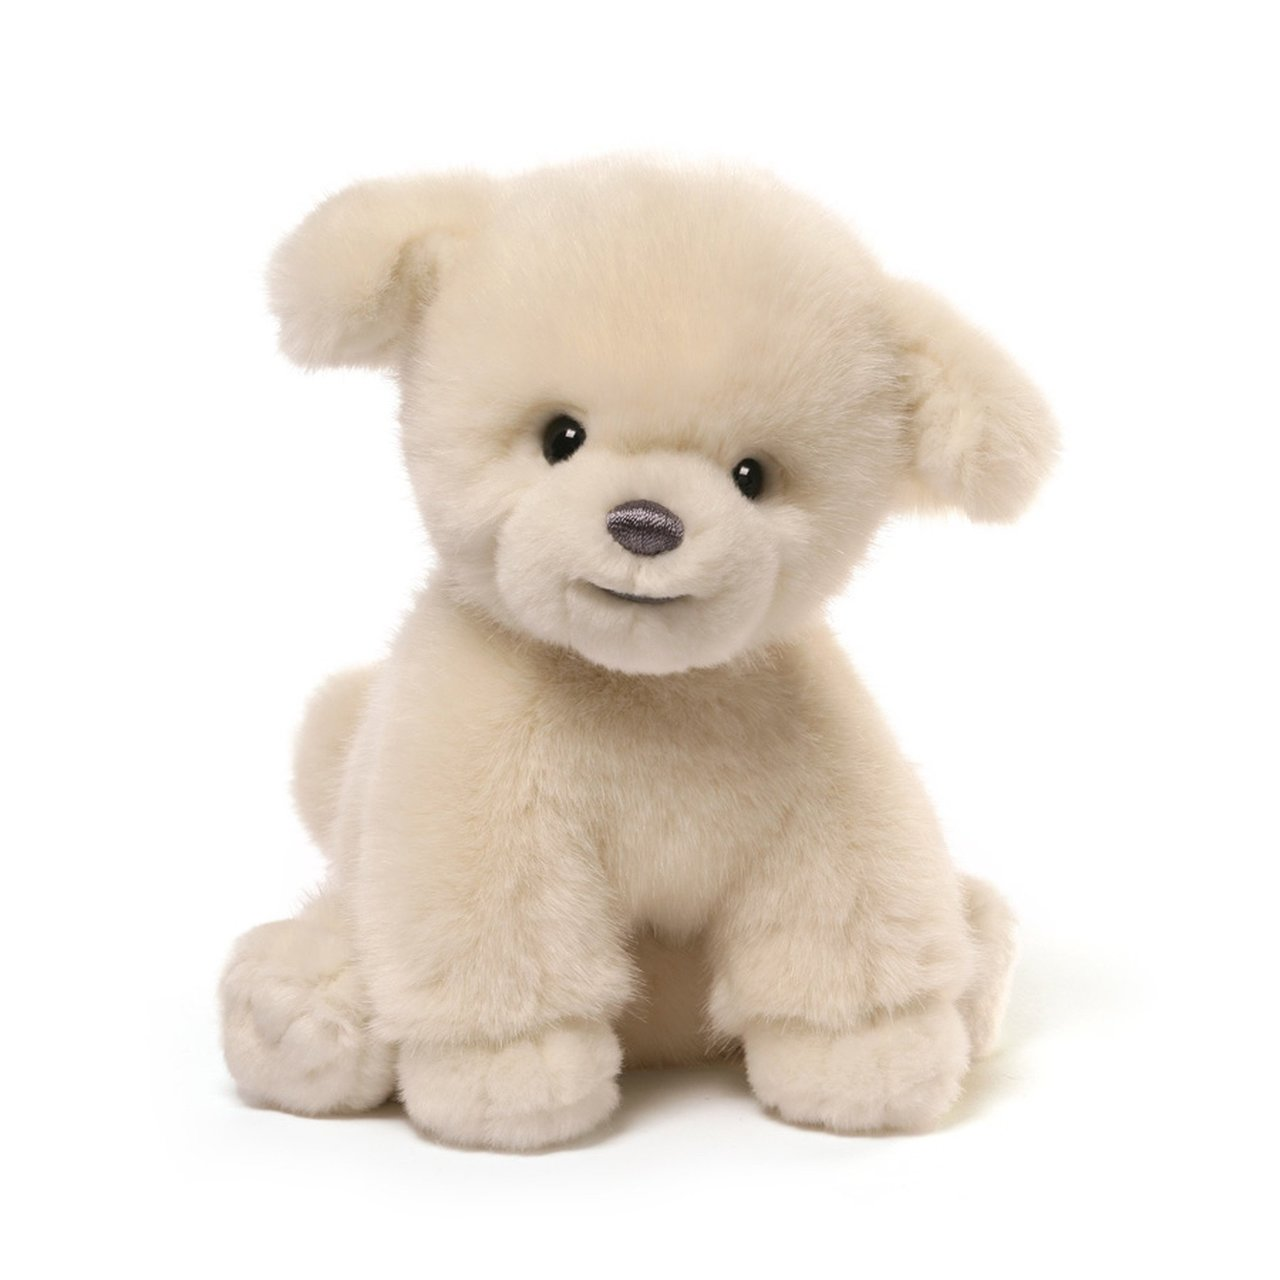 Gund Sadie Dog Stuffed Animal Plush, 9 inch